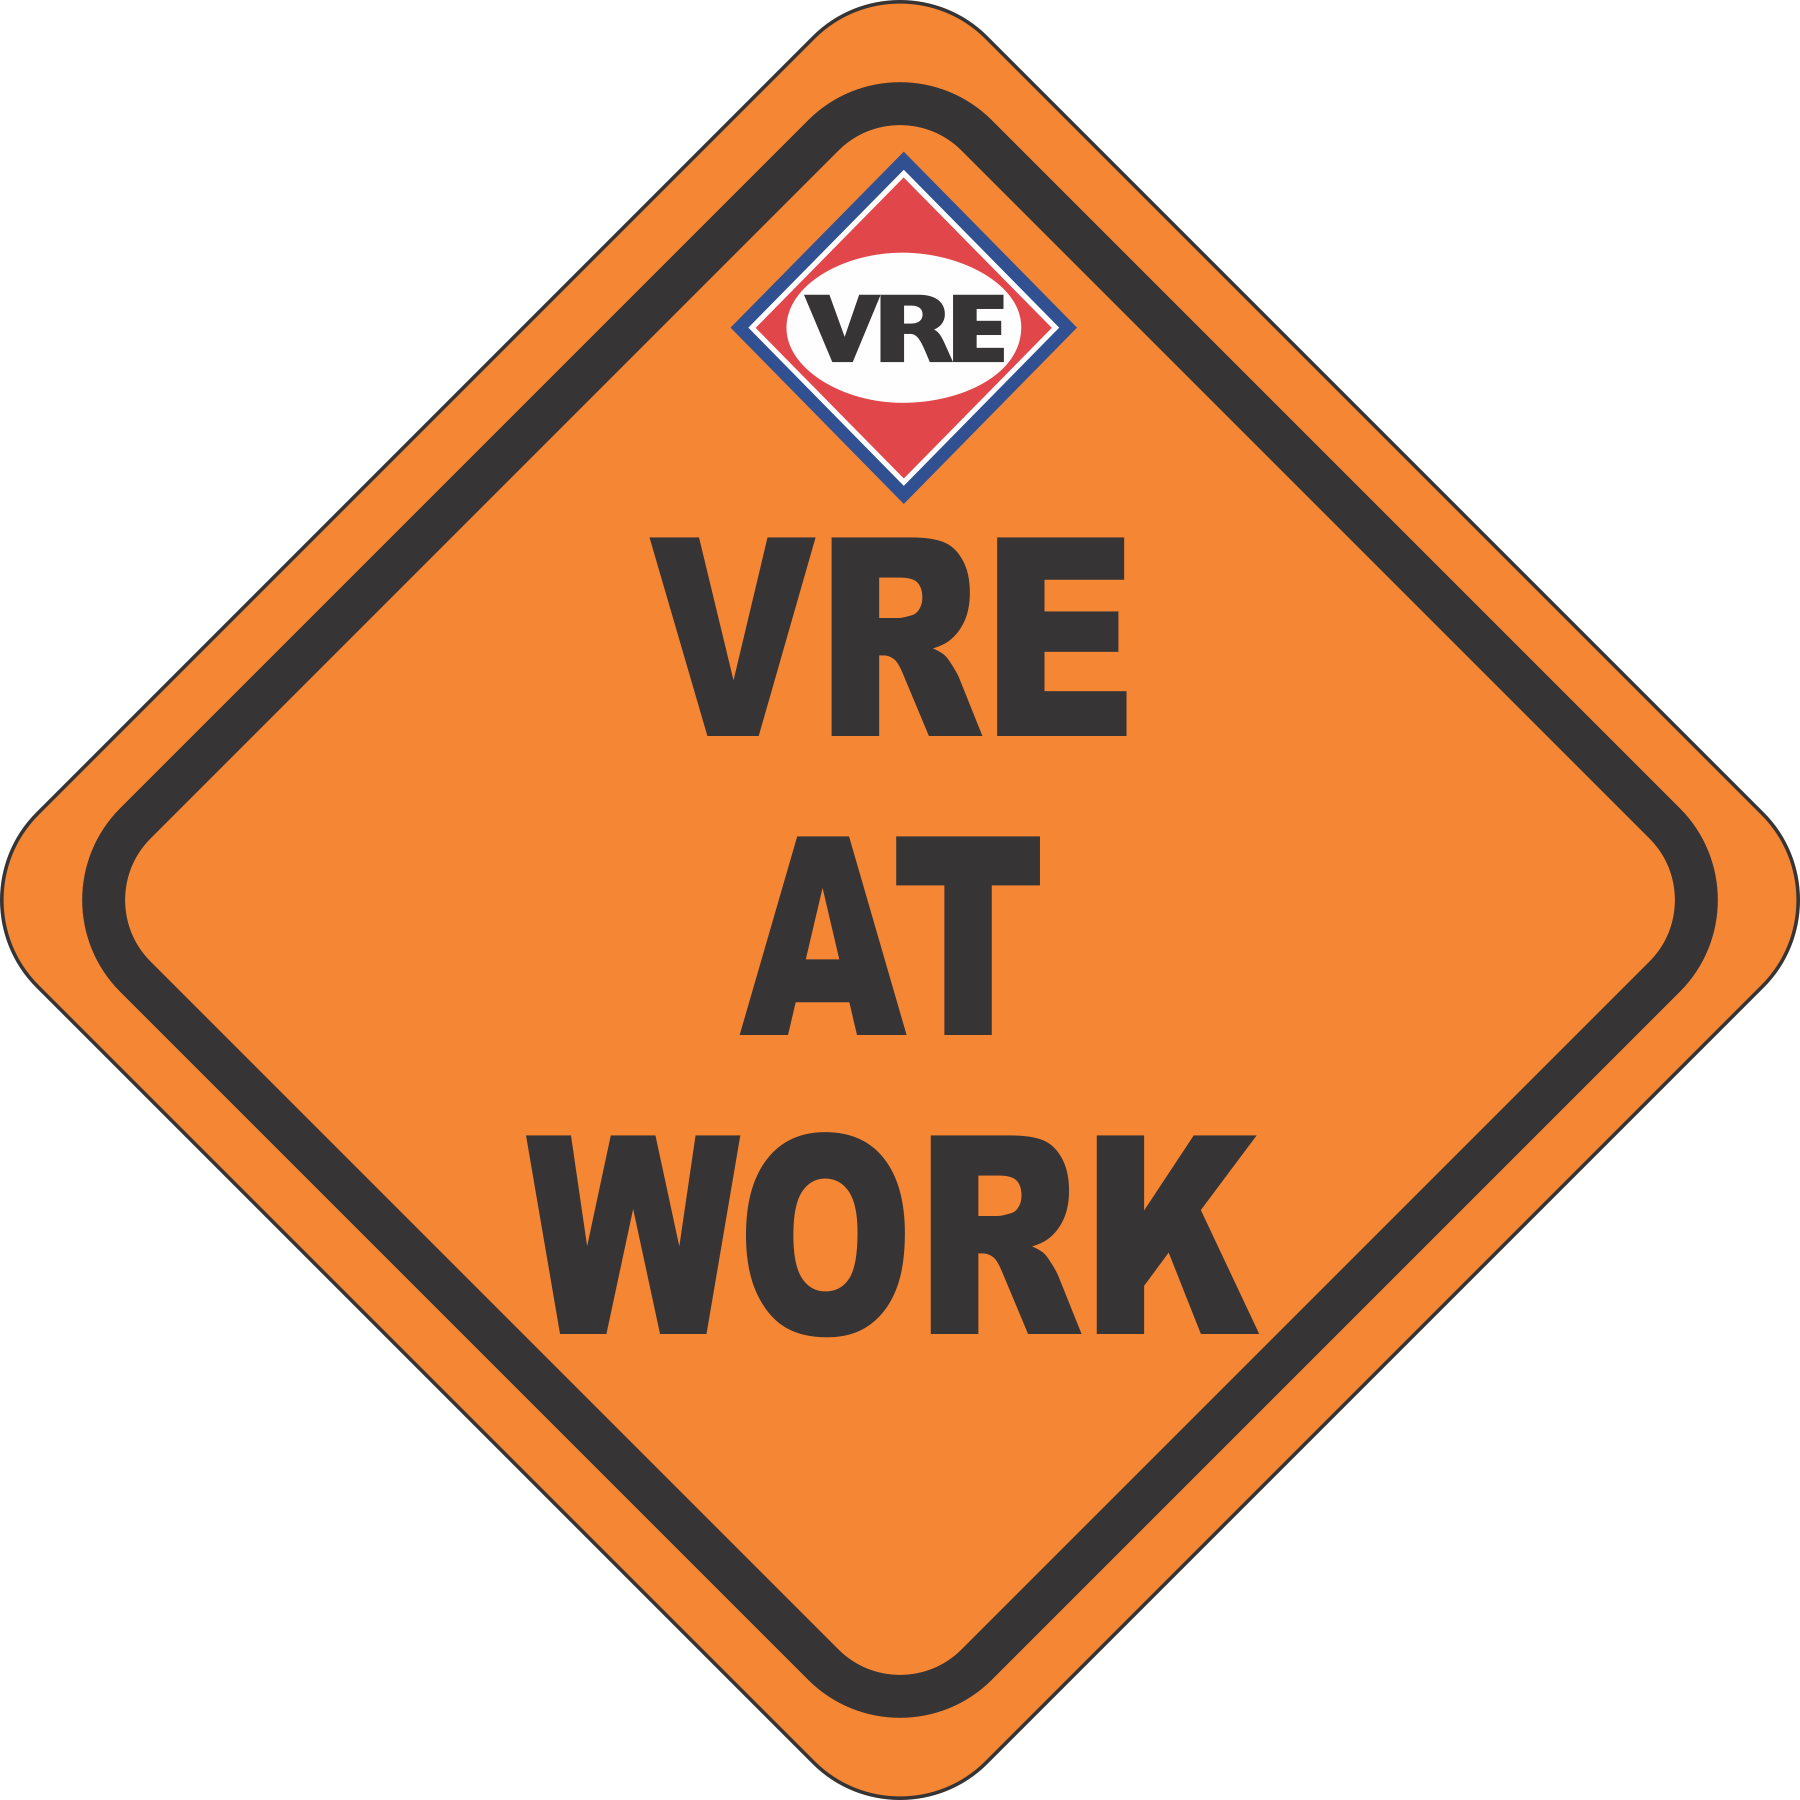 VRE AT WORK